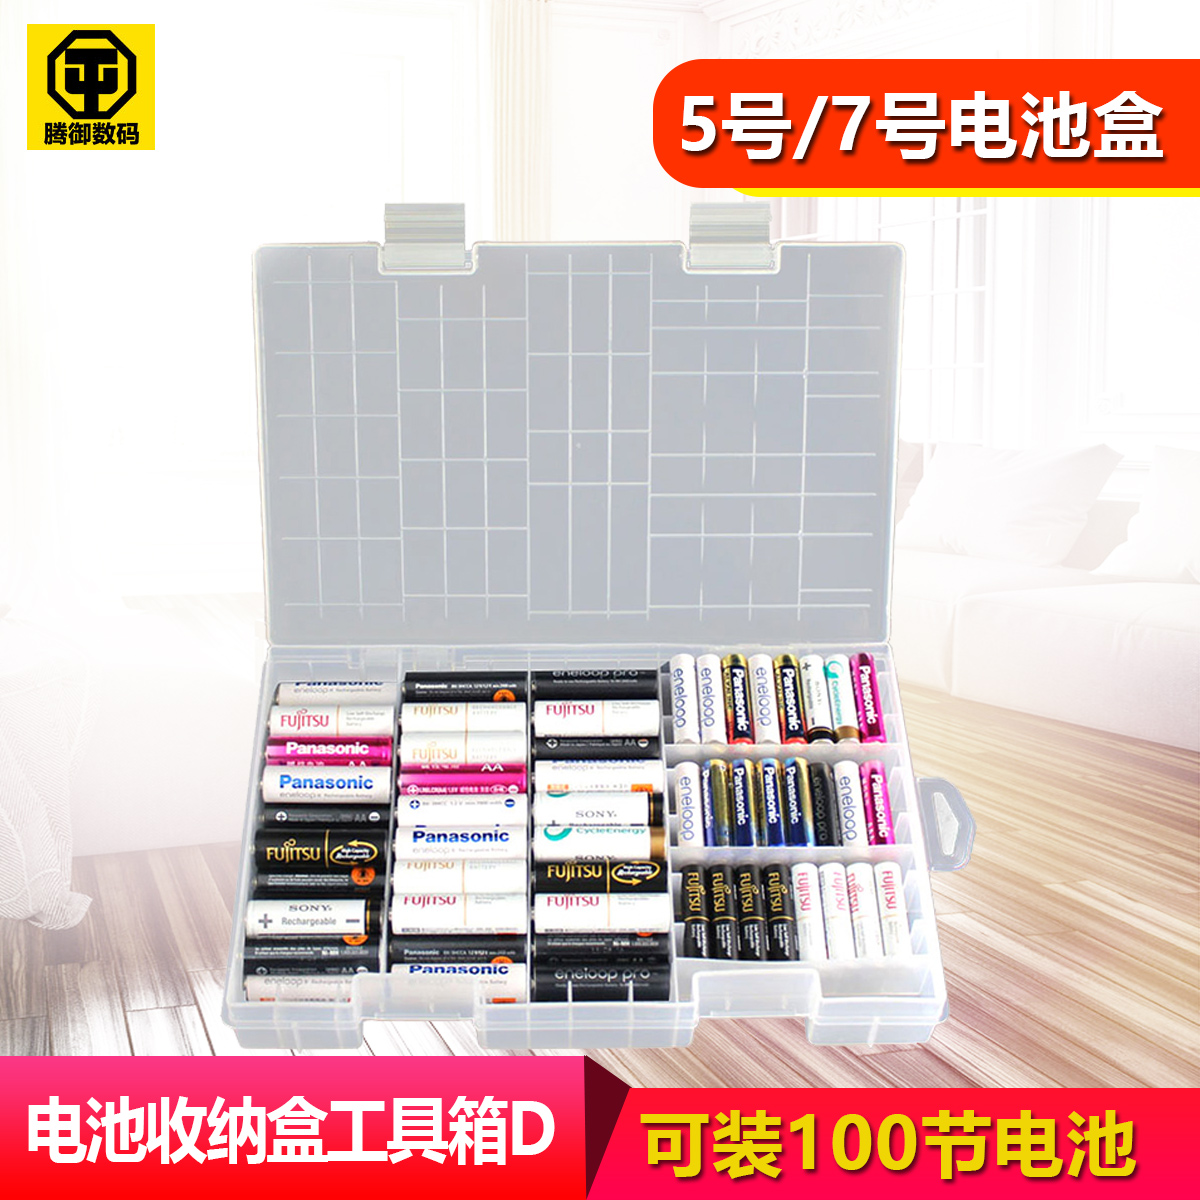 100 Sections No.5 and No.7 Battery Receiving Toolbox D Clean and Store Waterproof Protective Box Phase Battery Box No.5 and No.7